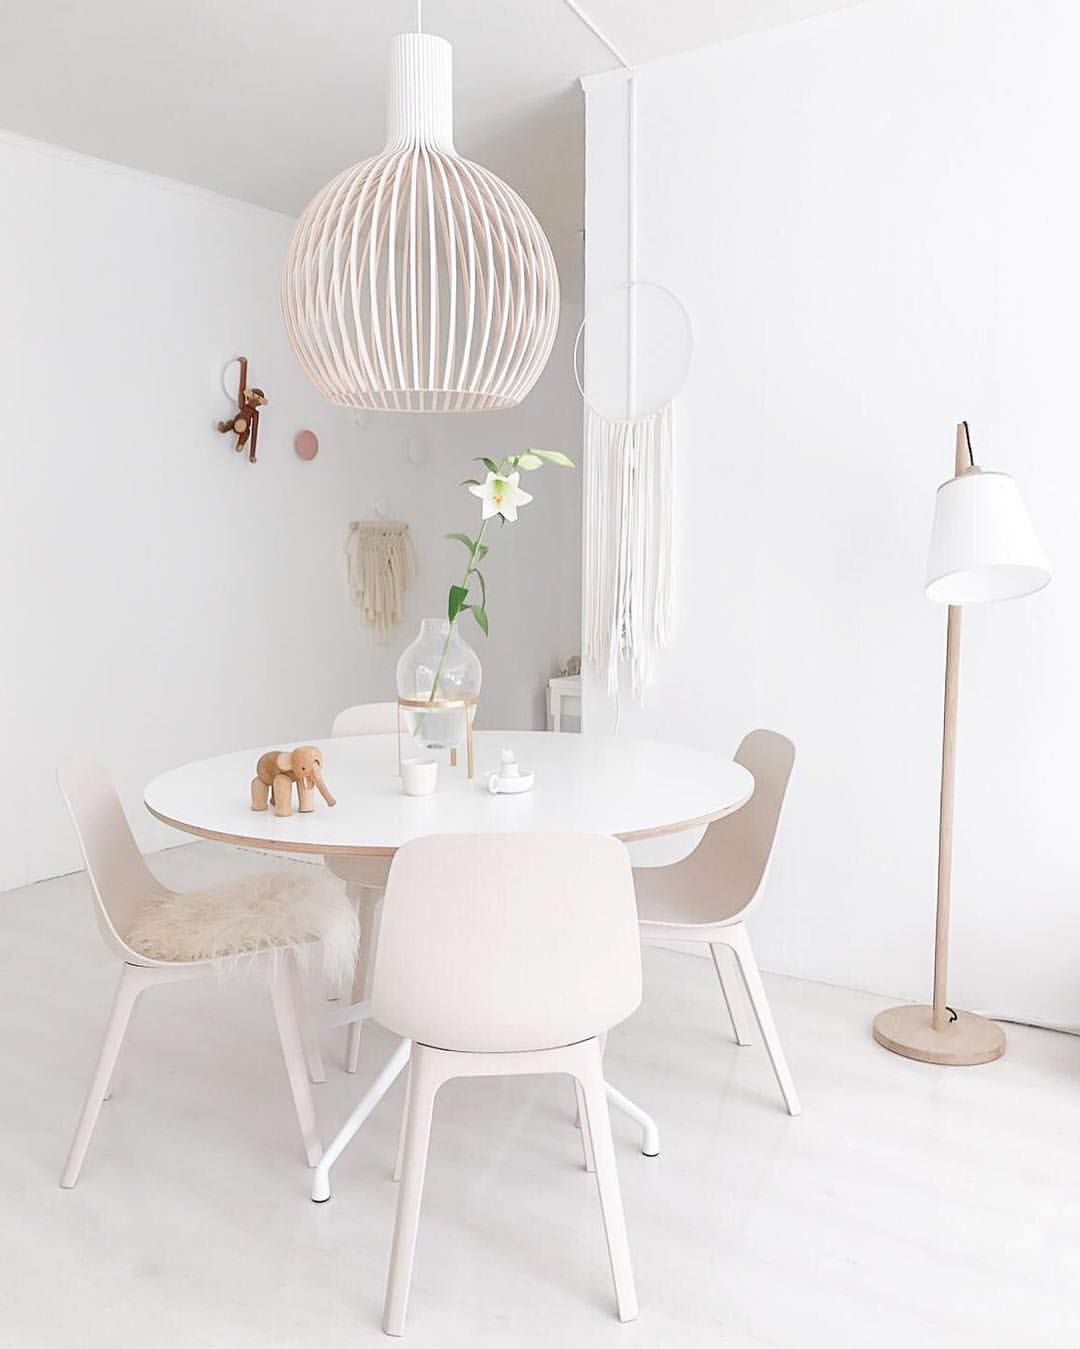 2 965 Vind Ik Leuks 156 Reacties Soohme Op Instagram Hiii Sweet All I Ordered New Hay Cha Ikea Dining Room Dining Room Inspiration Modern Dining Chairs